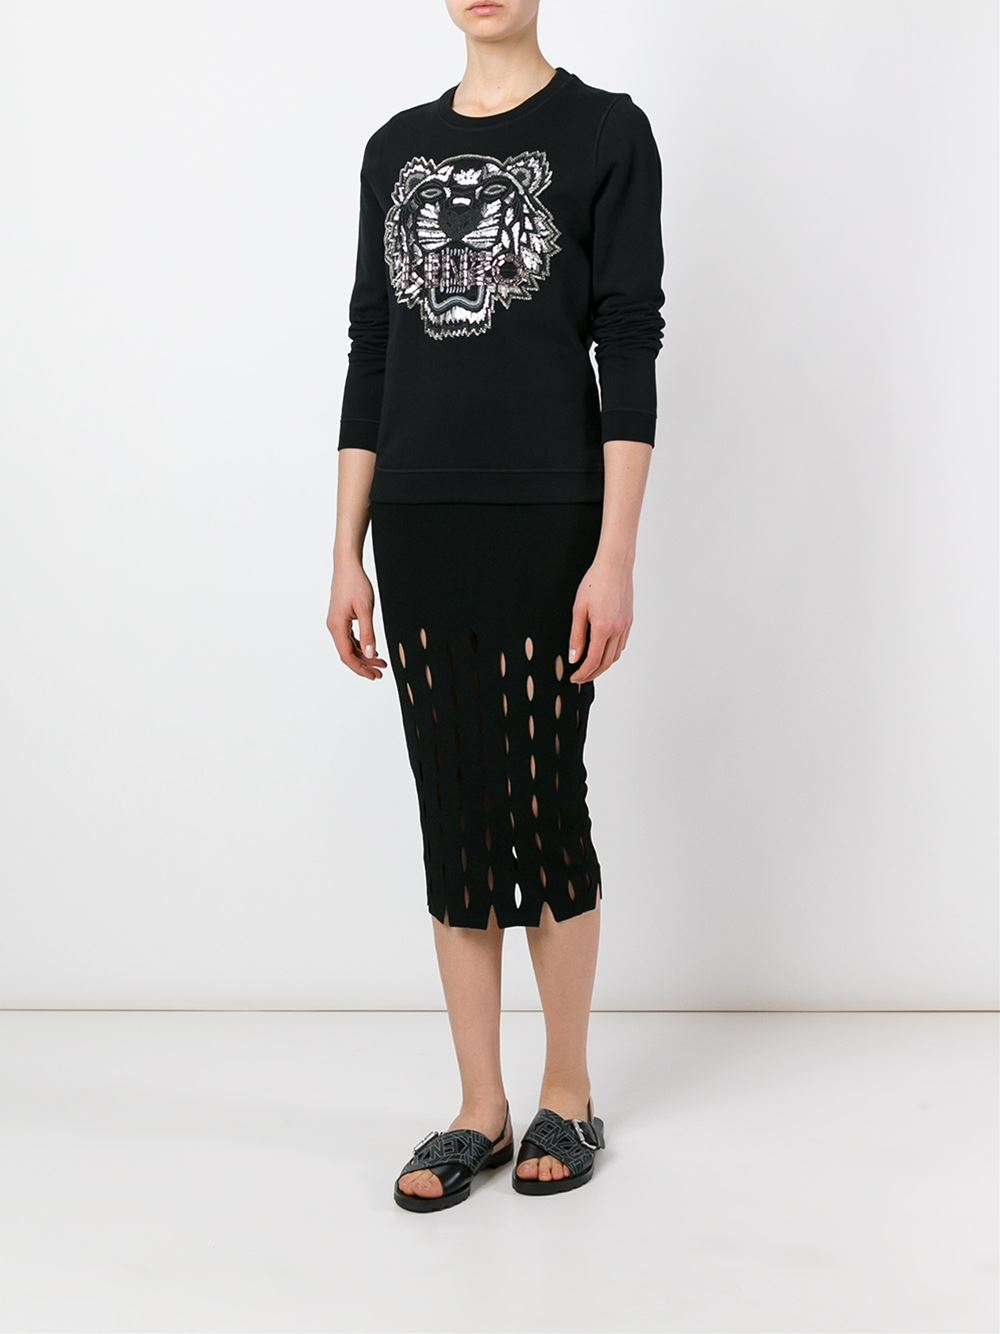 Amour Tiger kenzo Brodées Kenzo Sweat Femme Clothing À Perles B8O8axwvq